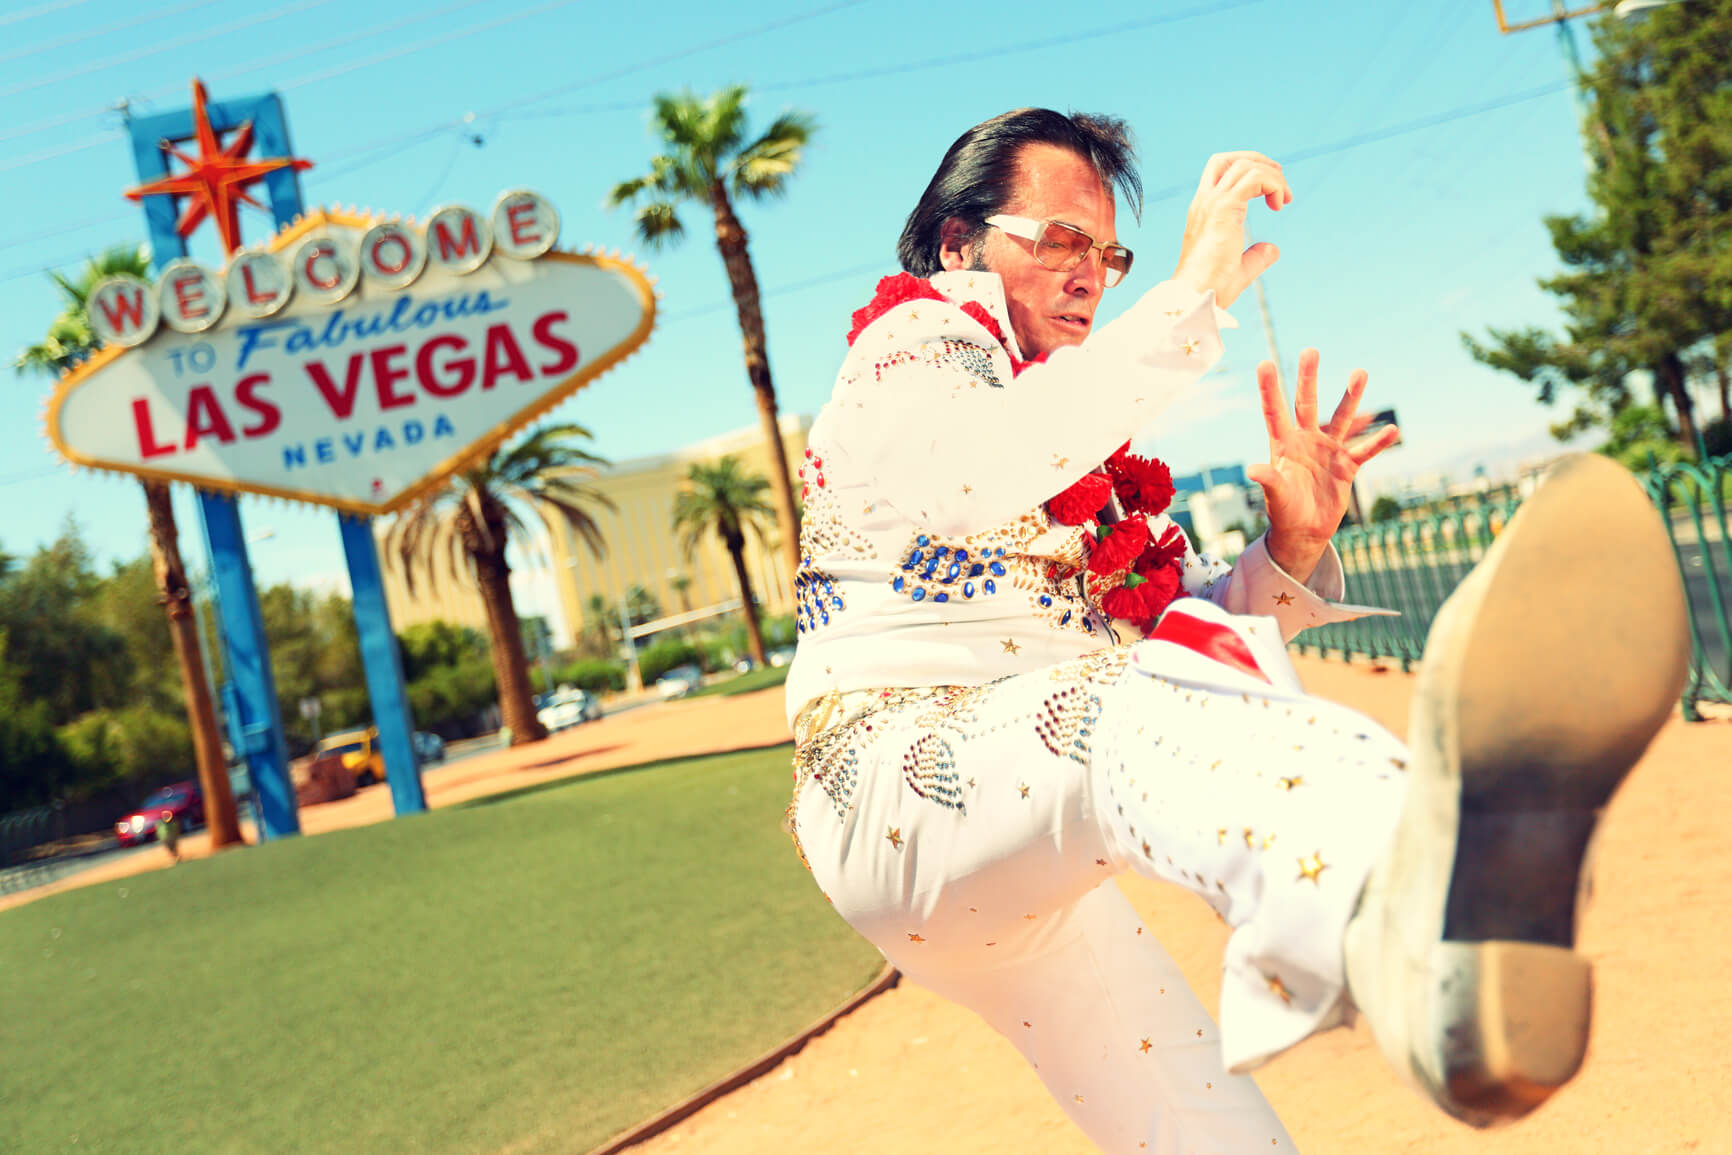 SUMMER: Non-stop from Houston, Texas to Las Vegas (& vice versa) for only $96 roundtrip